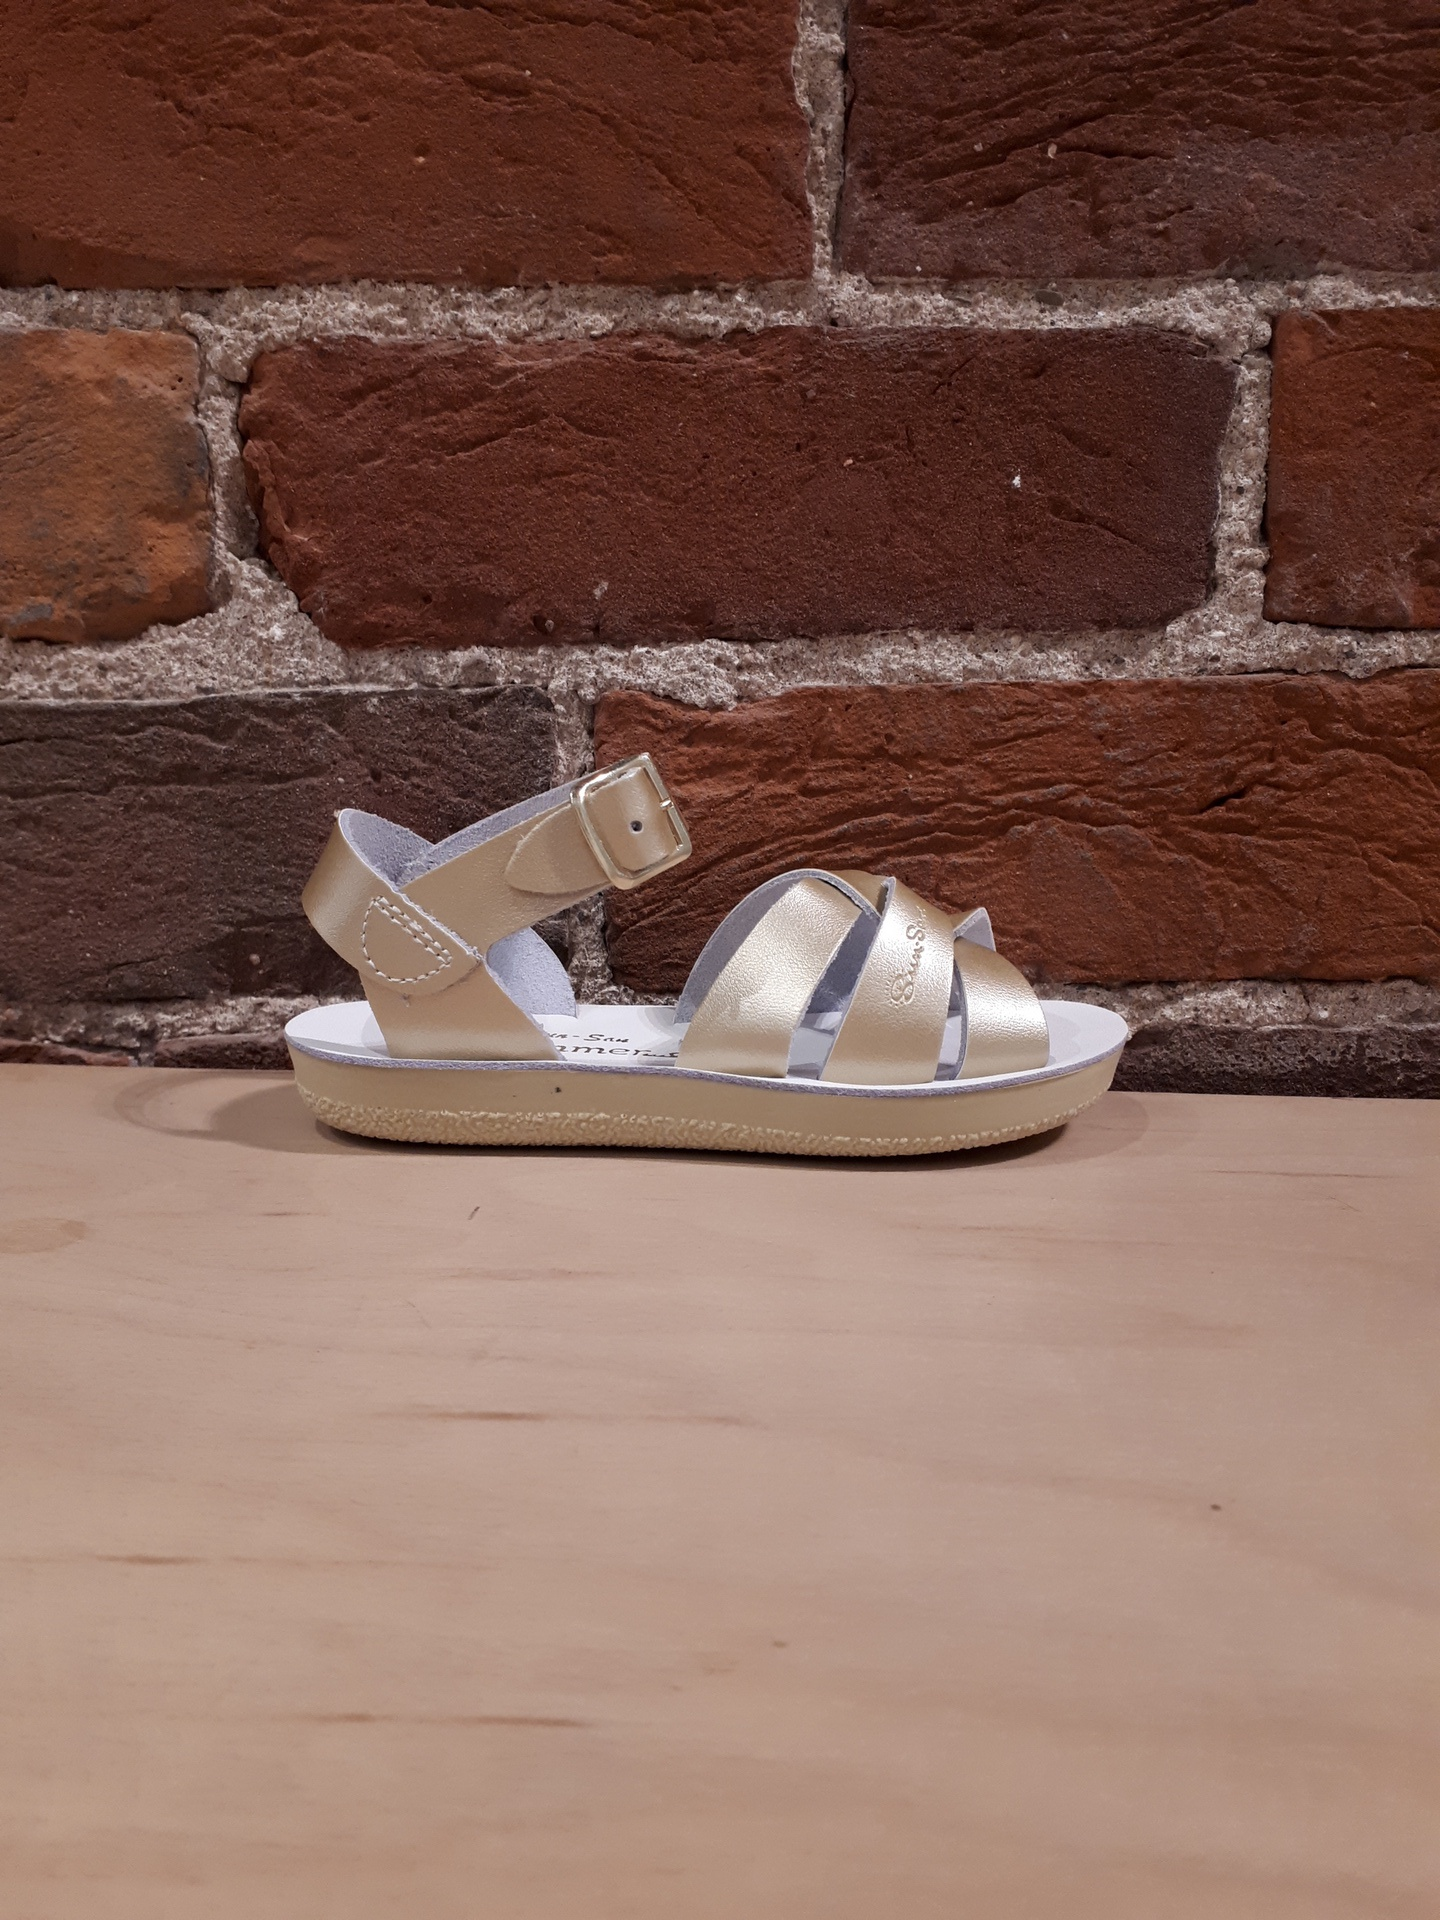 SALT WATER SANDALS - SWIMMER IN GOLD (9-12)